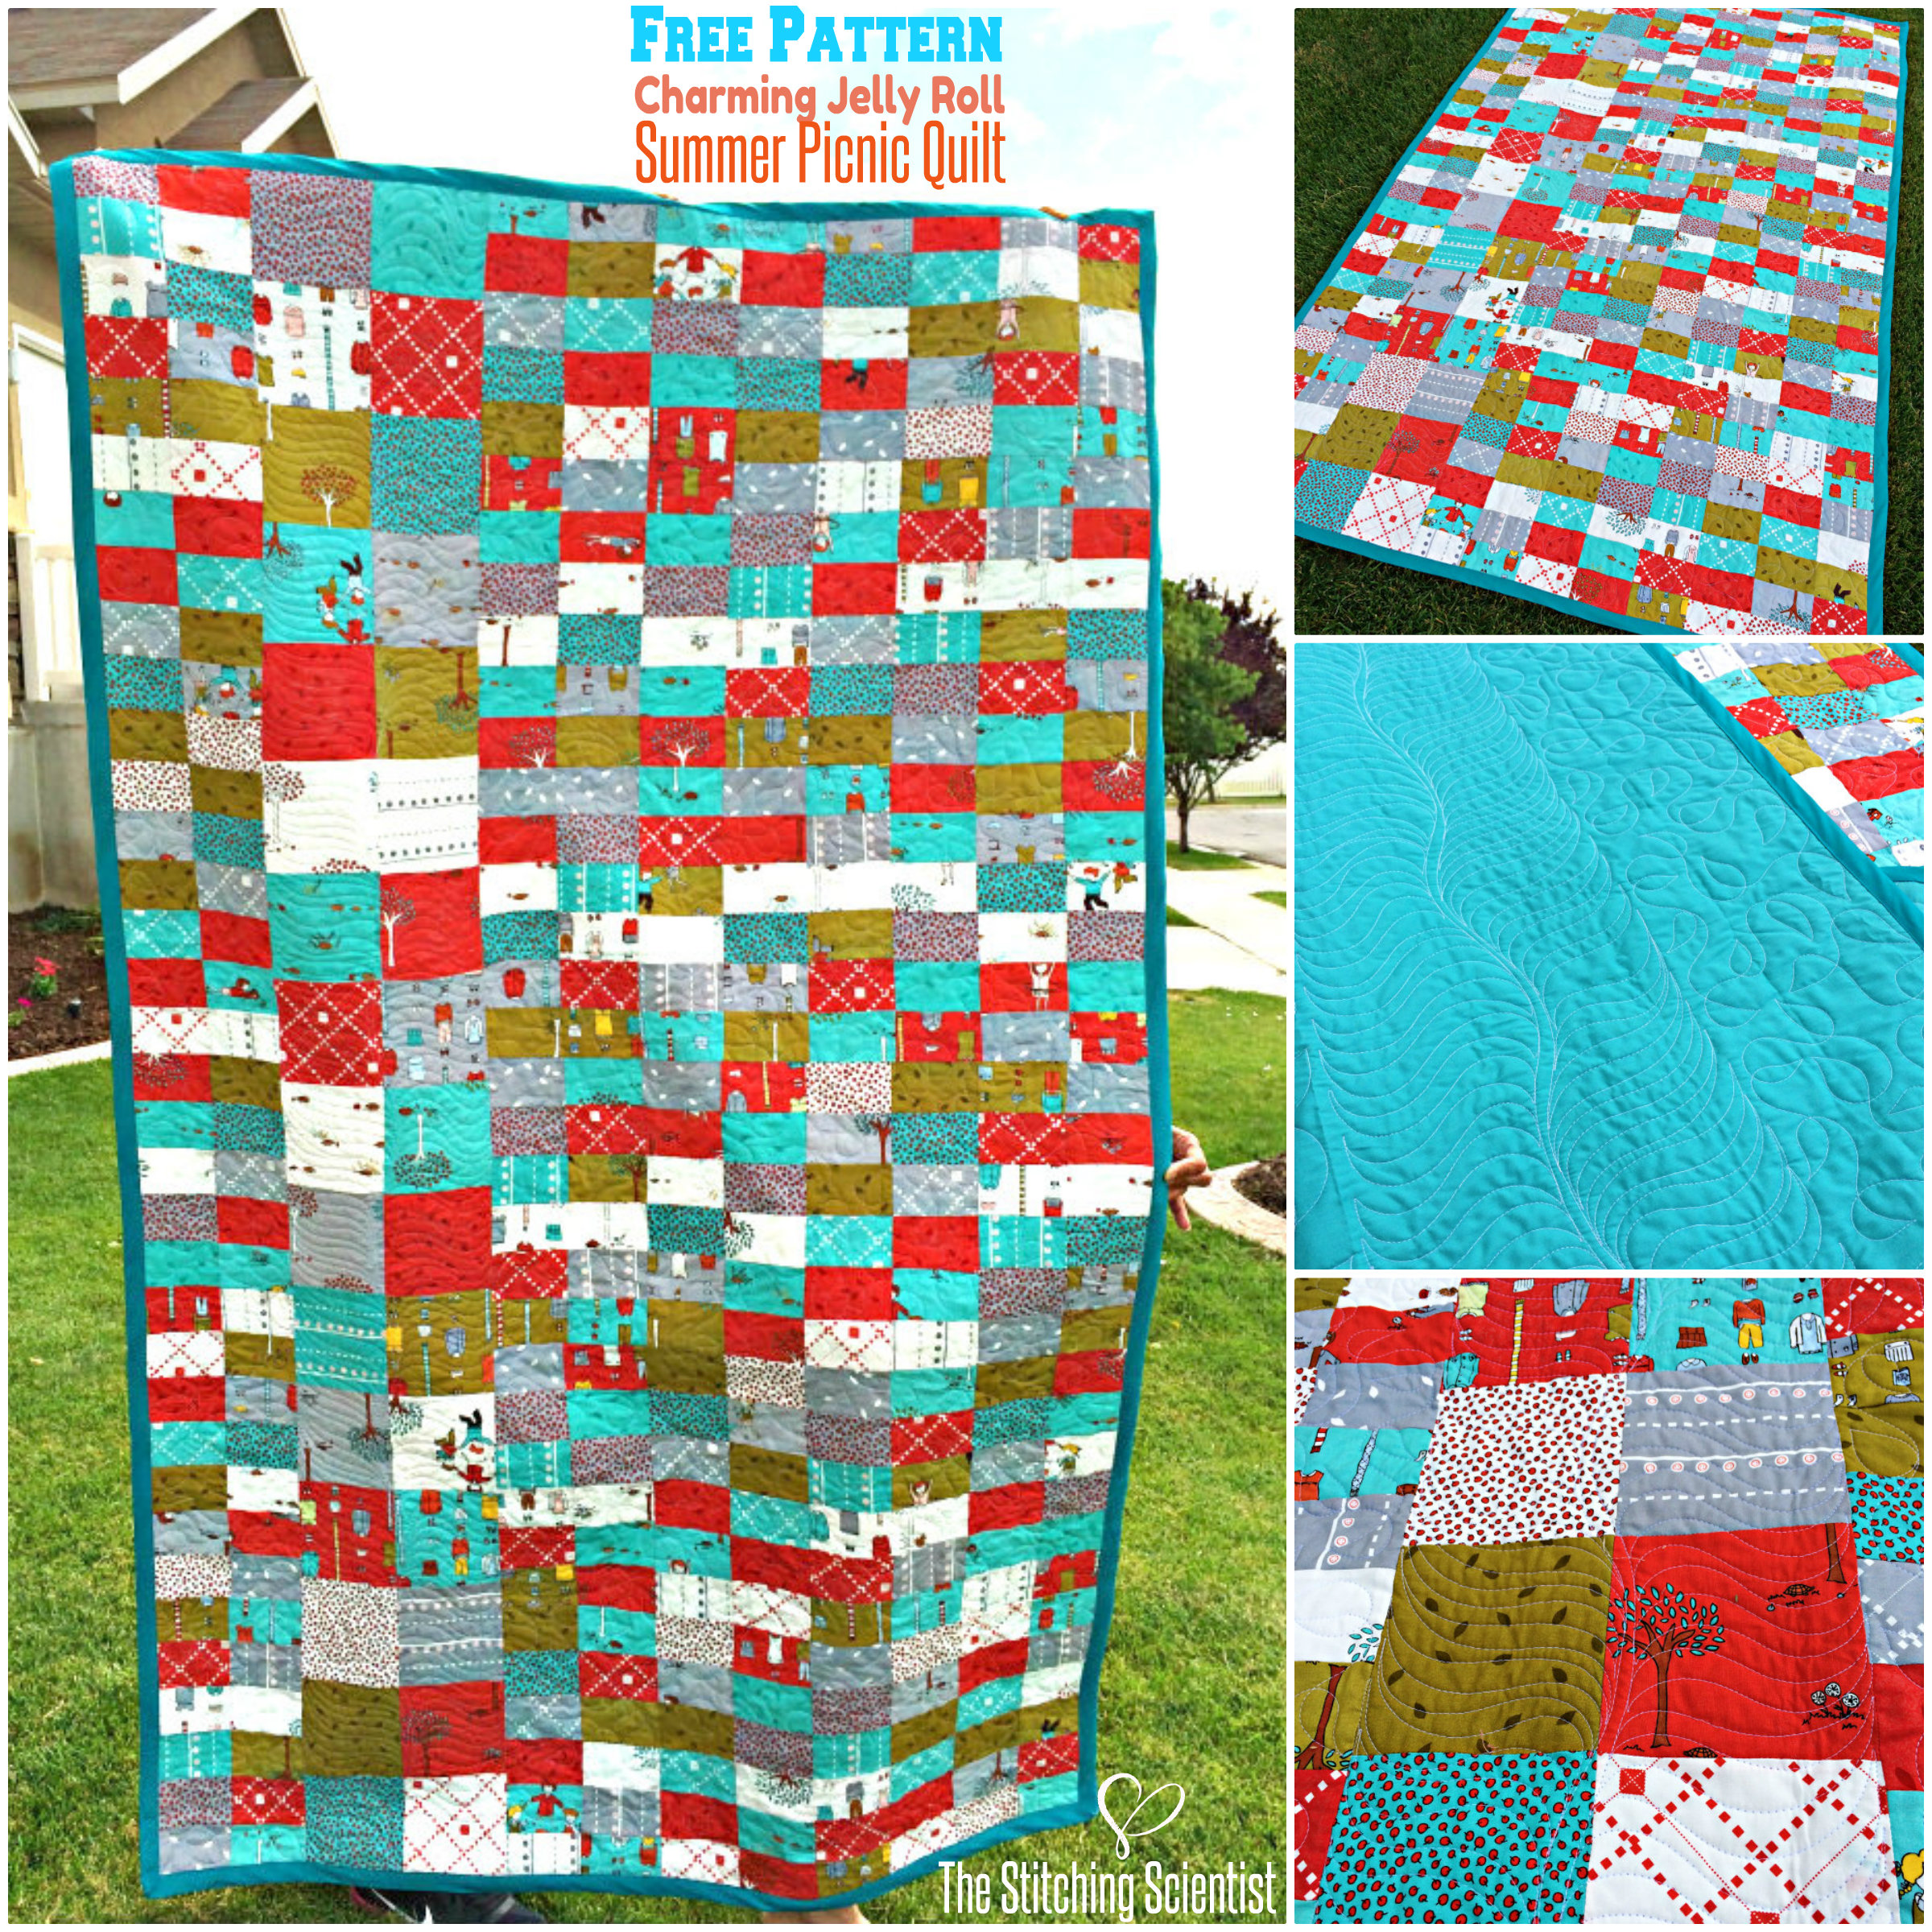 Charming Jelly Roll Summer Picnic Quilt with Free Pattern